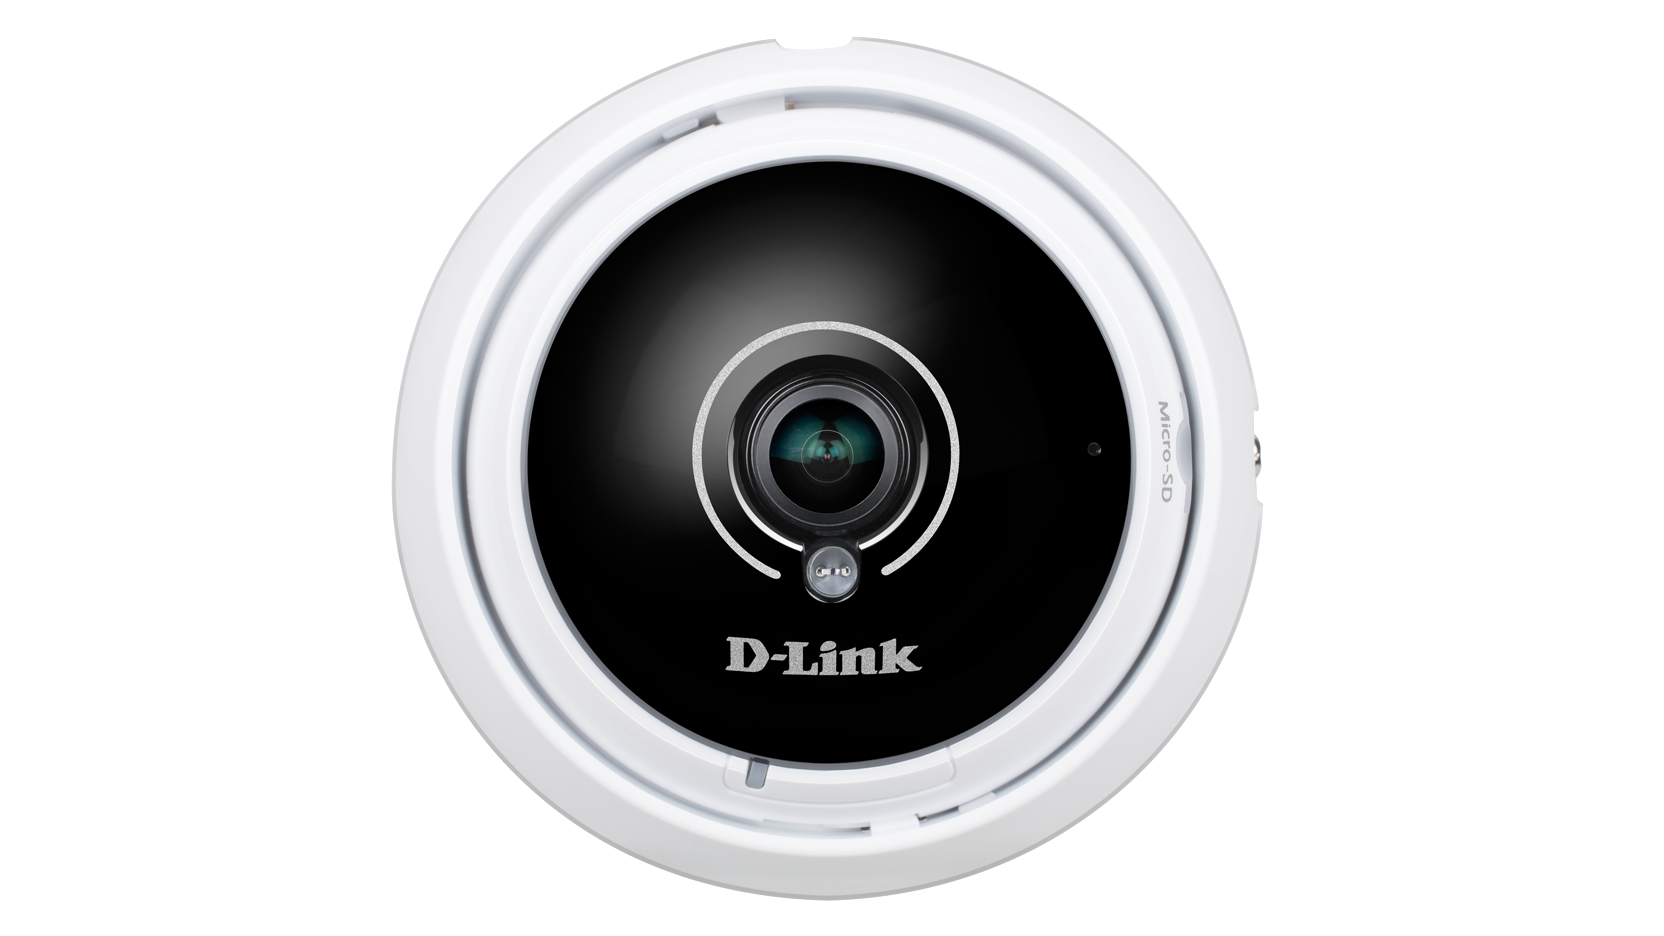 D-Link DCS-4622 3MP FULL HD 360-DEGREE POE IP CAMERA 5Y